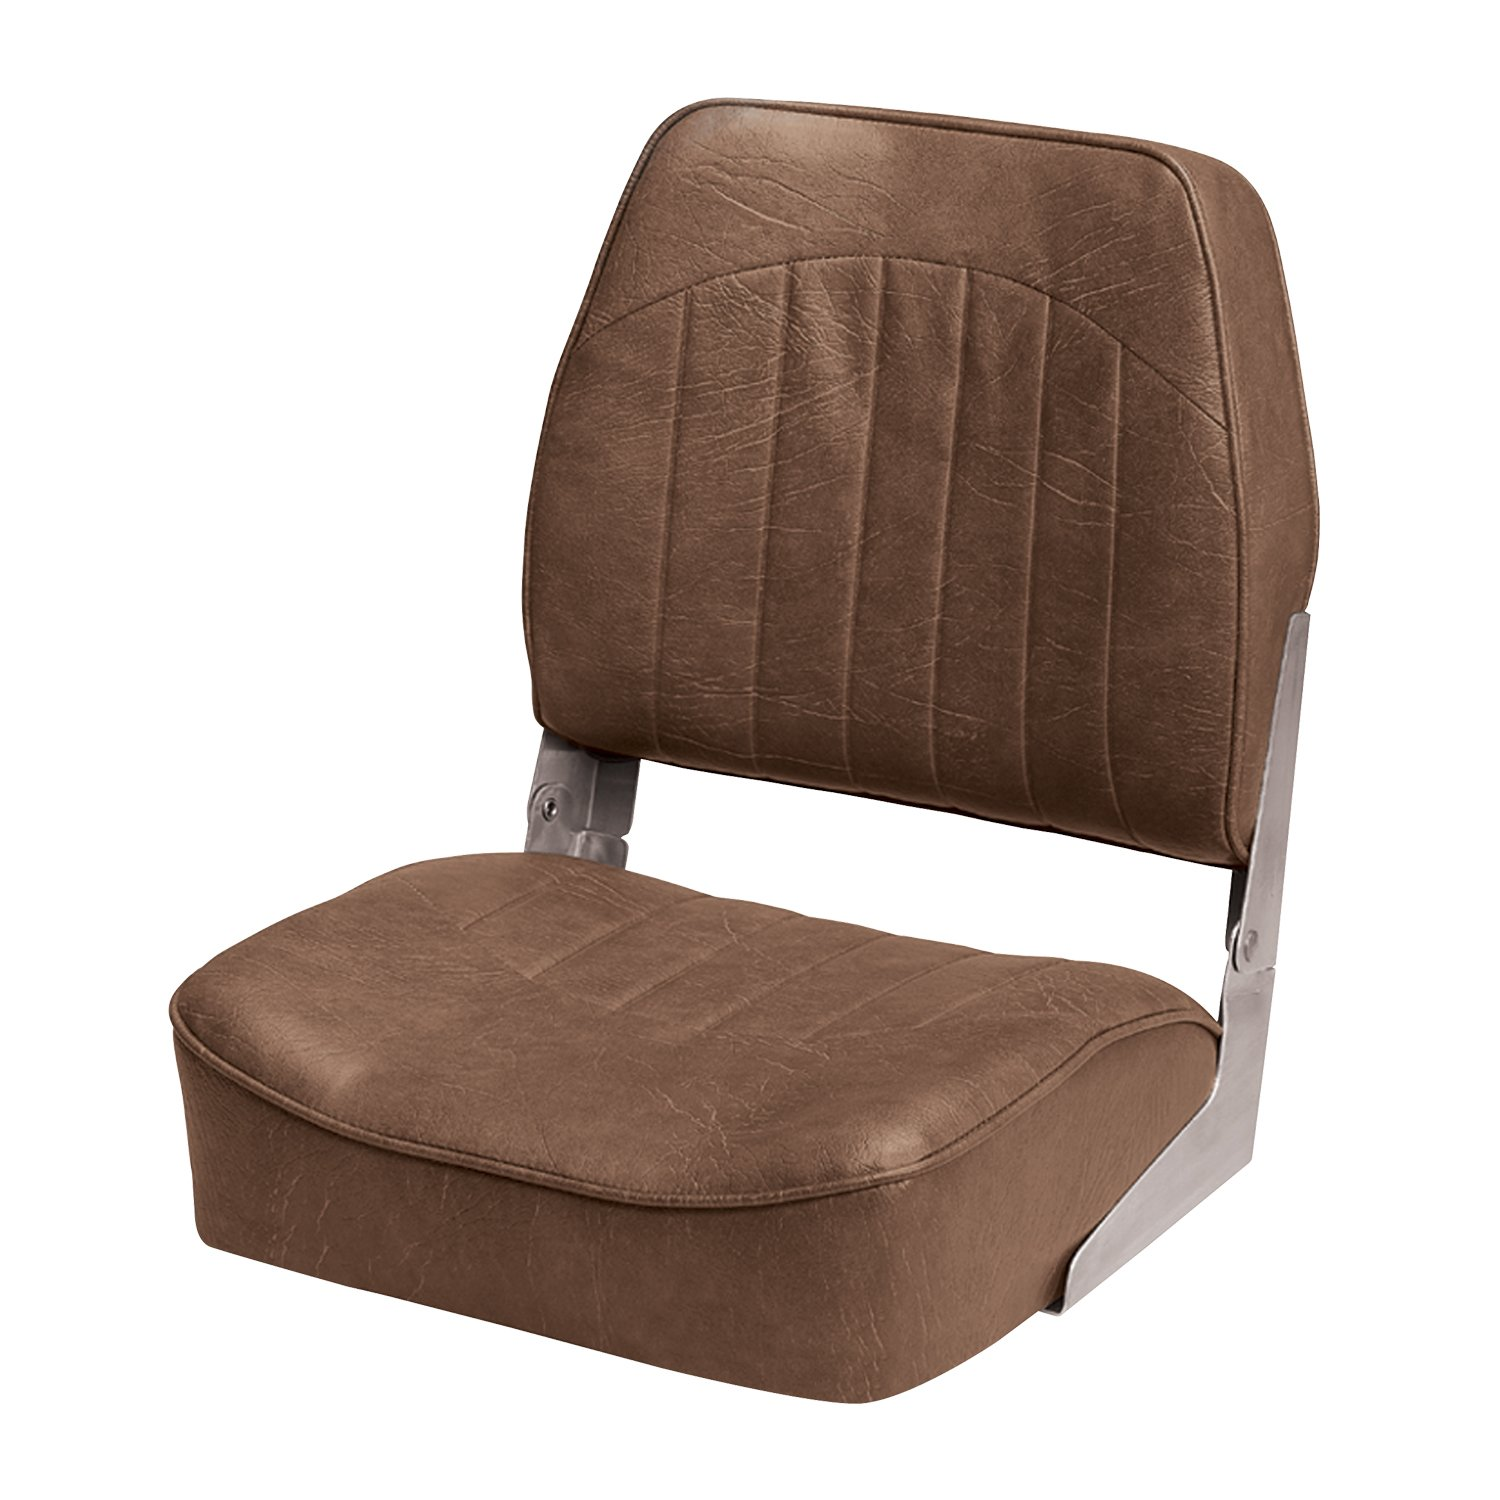 Wise 8WD734PLS-716 Low Back Boat Seat, Bark Brown by Wise